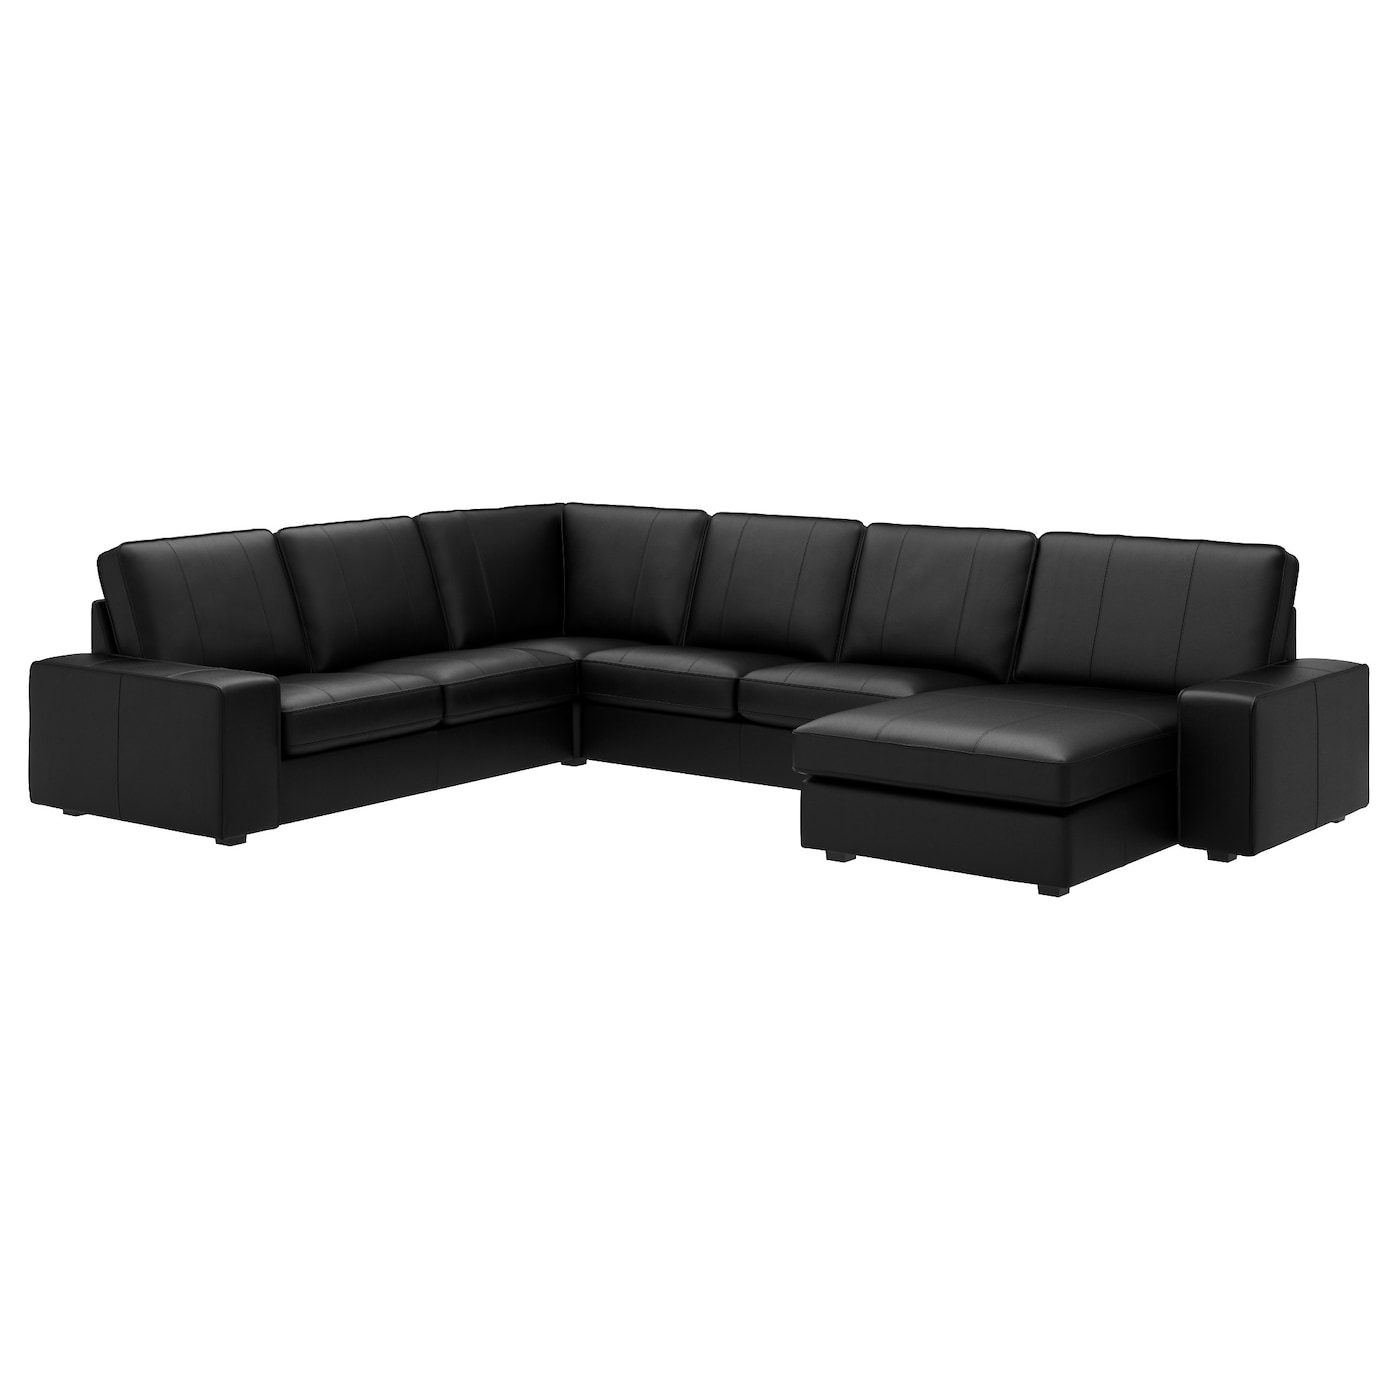 kivik corner sofa 5 seat with chaise longue grann bomstad. Black Bedroom Furniture Sets. Home Design Ideas